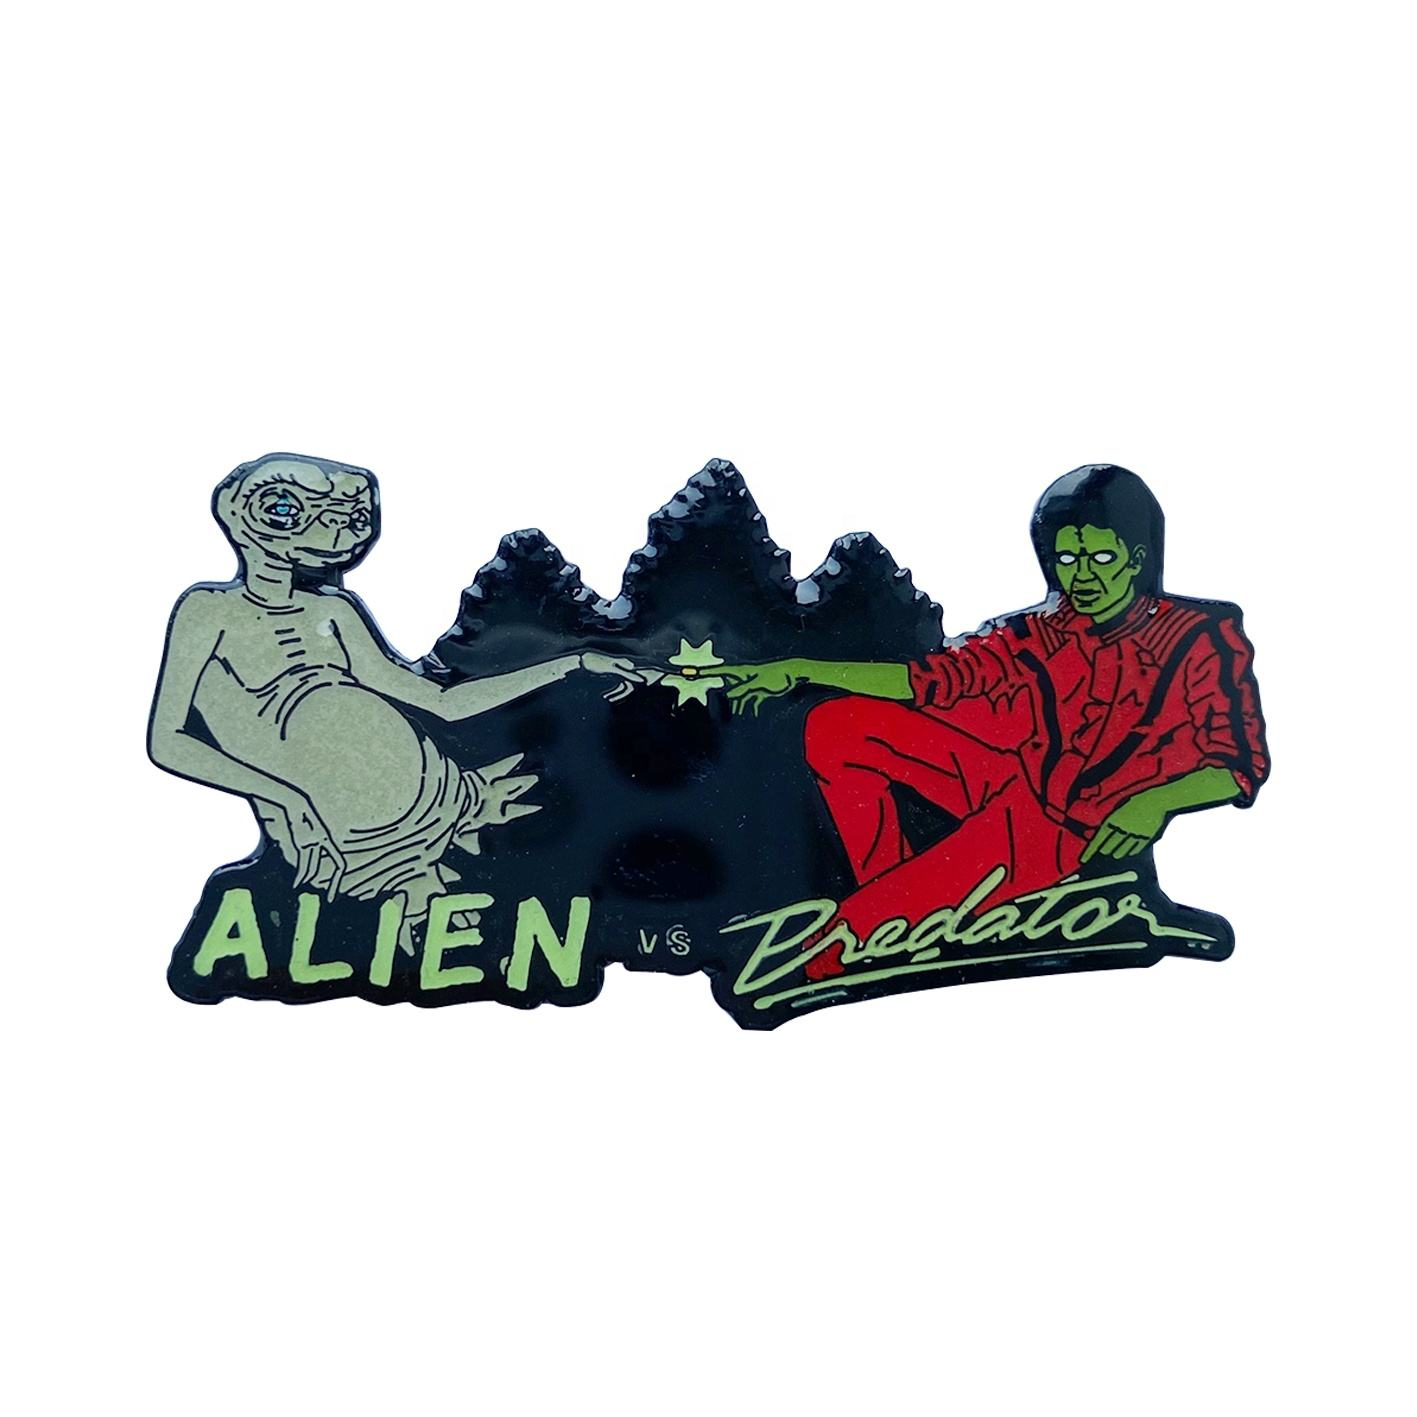 E.T and Michelson lapel pin Factory Custom enamel metal badge pins